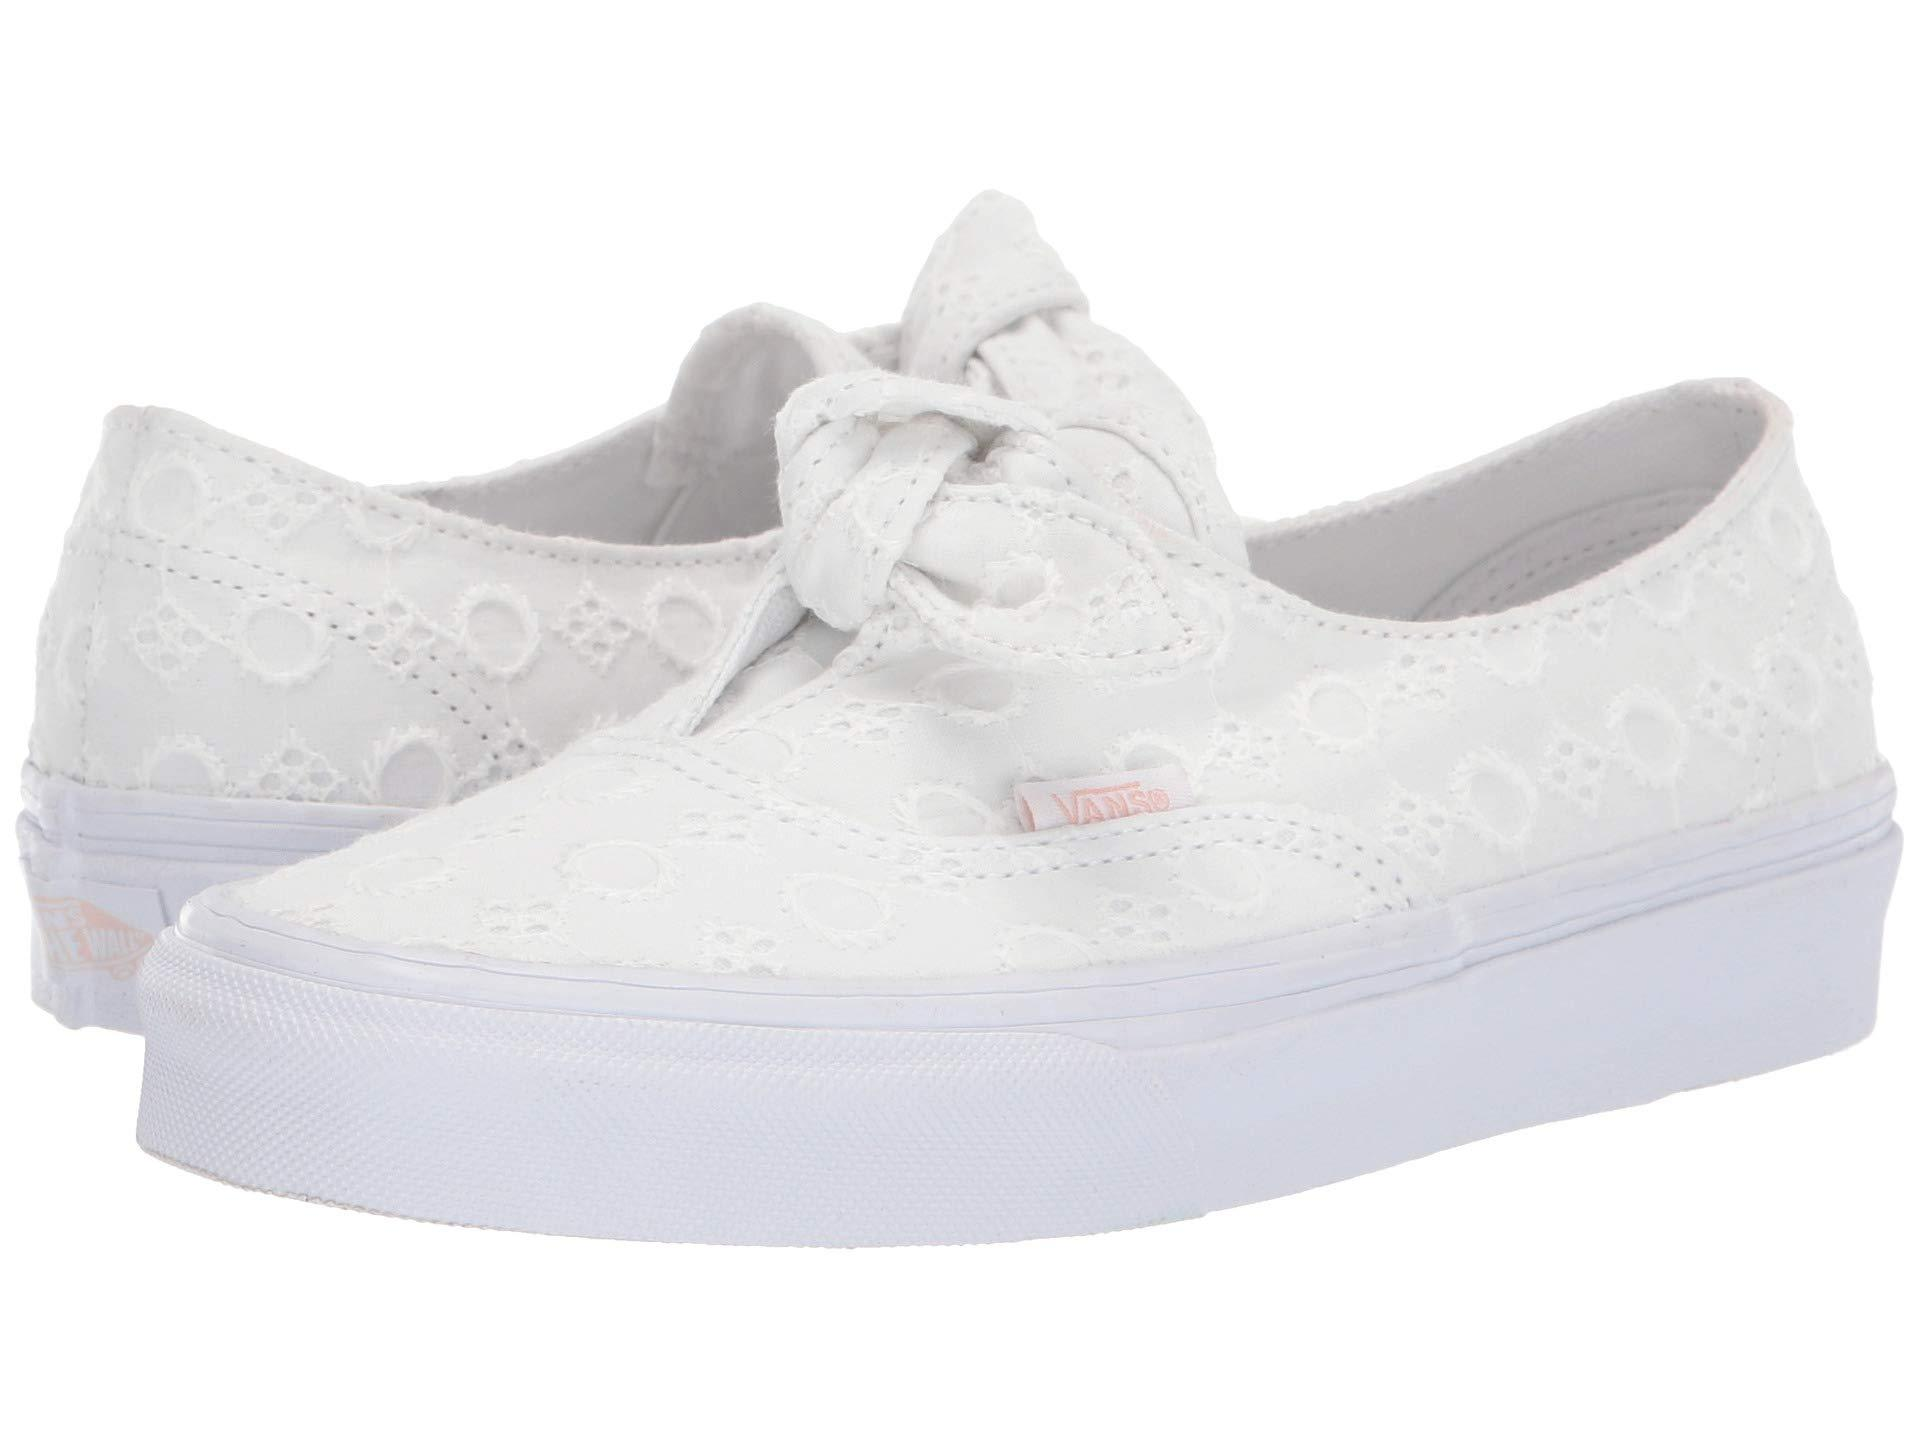 Vans Canvas Authentic Knotted in White